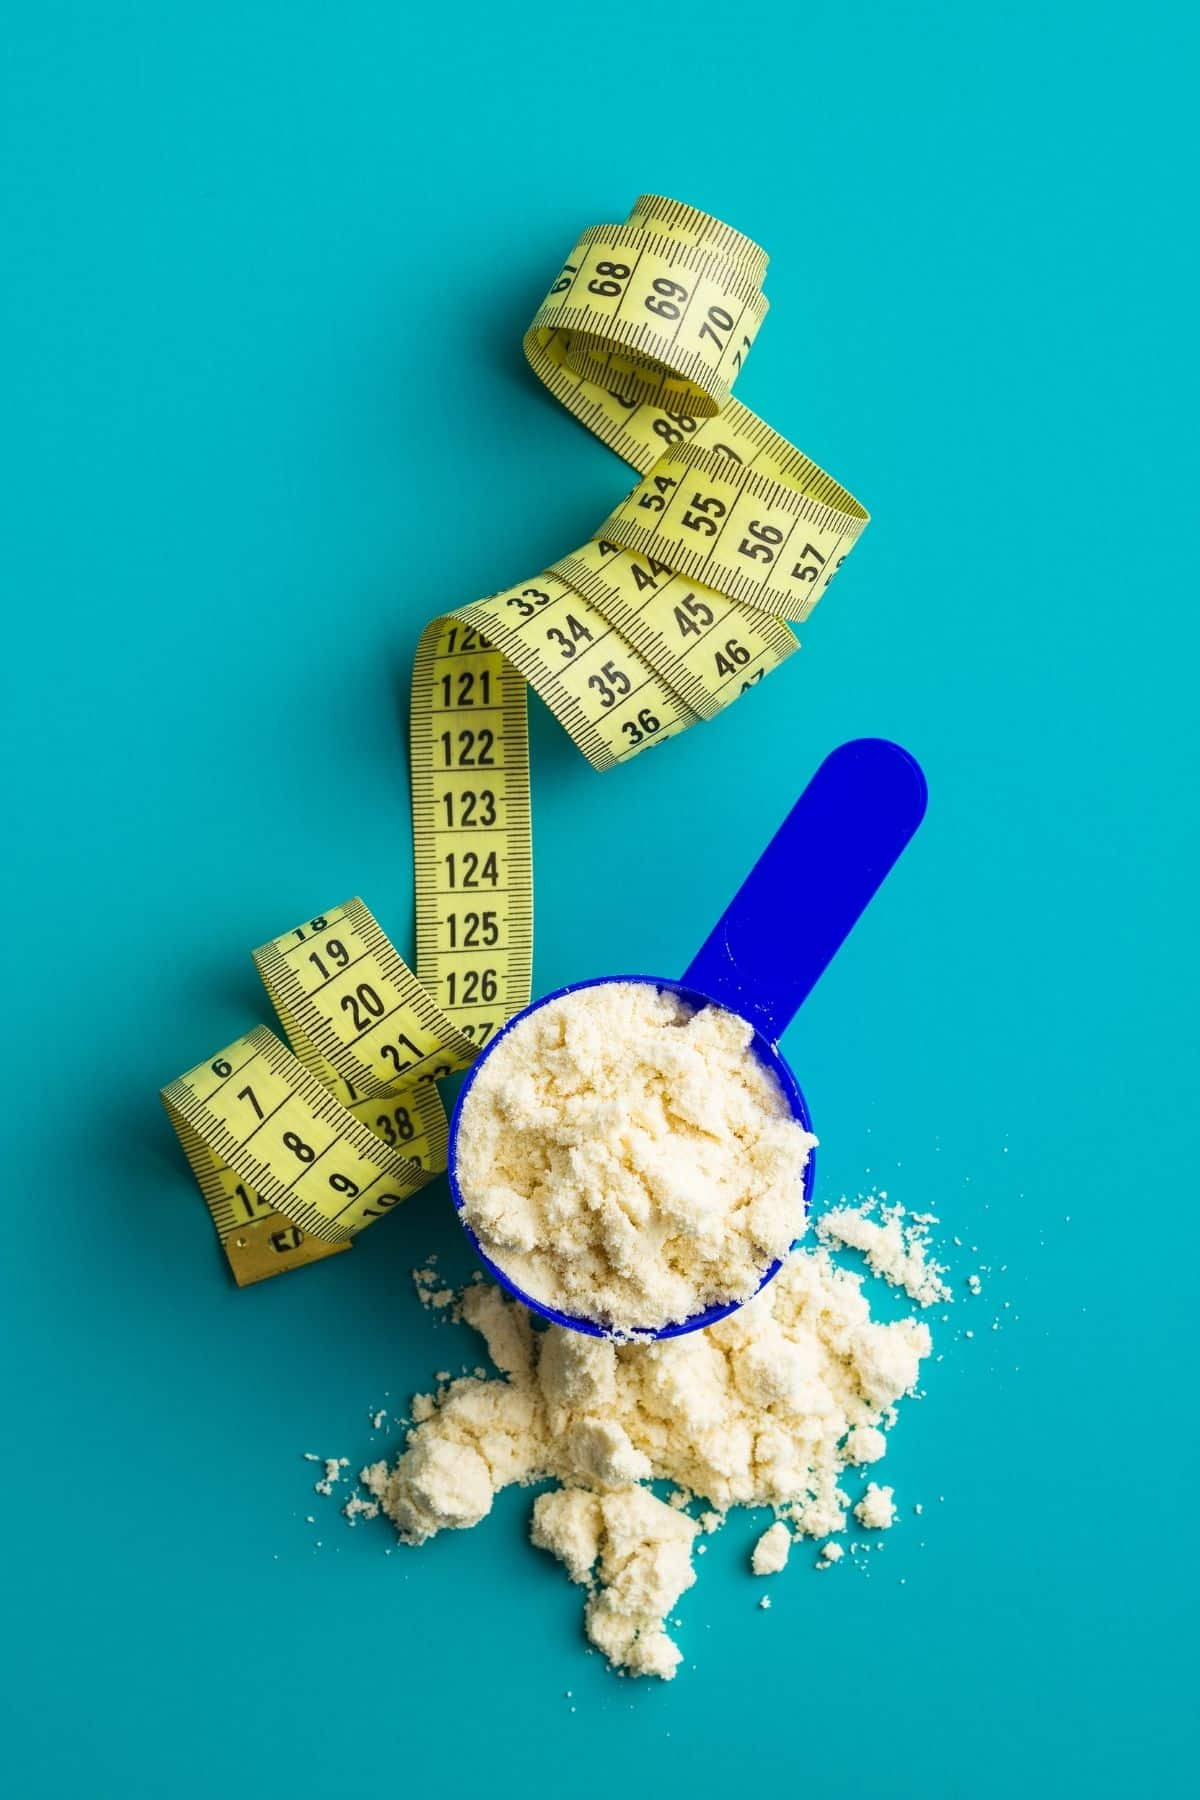 protein powder with a measuring tape